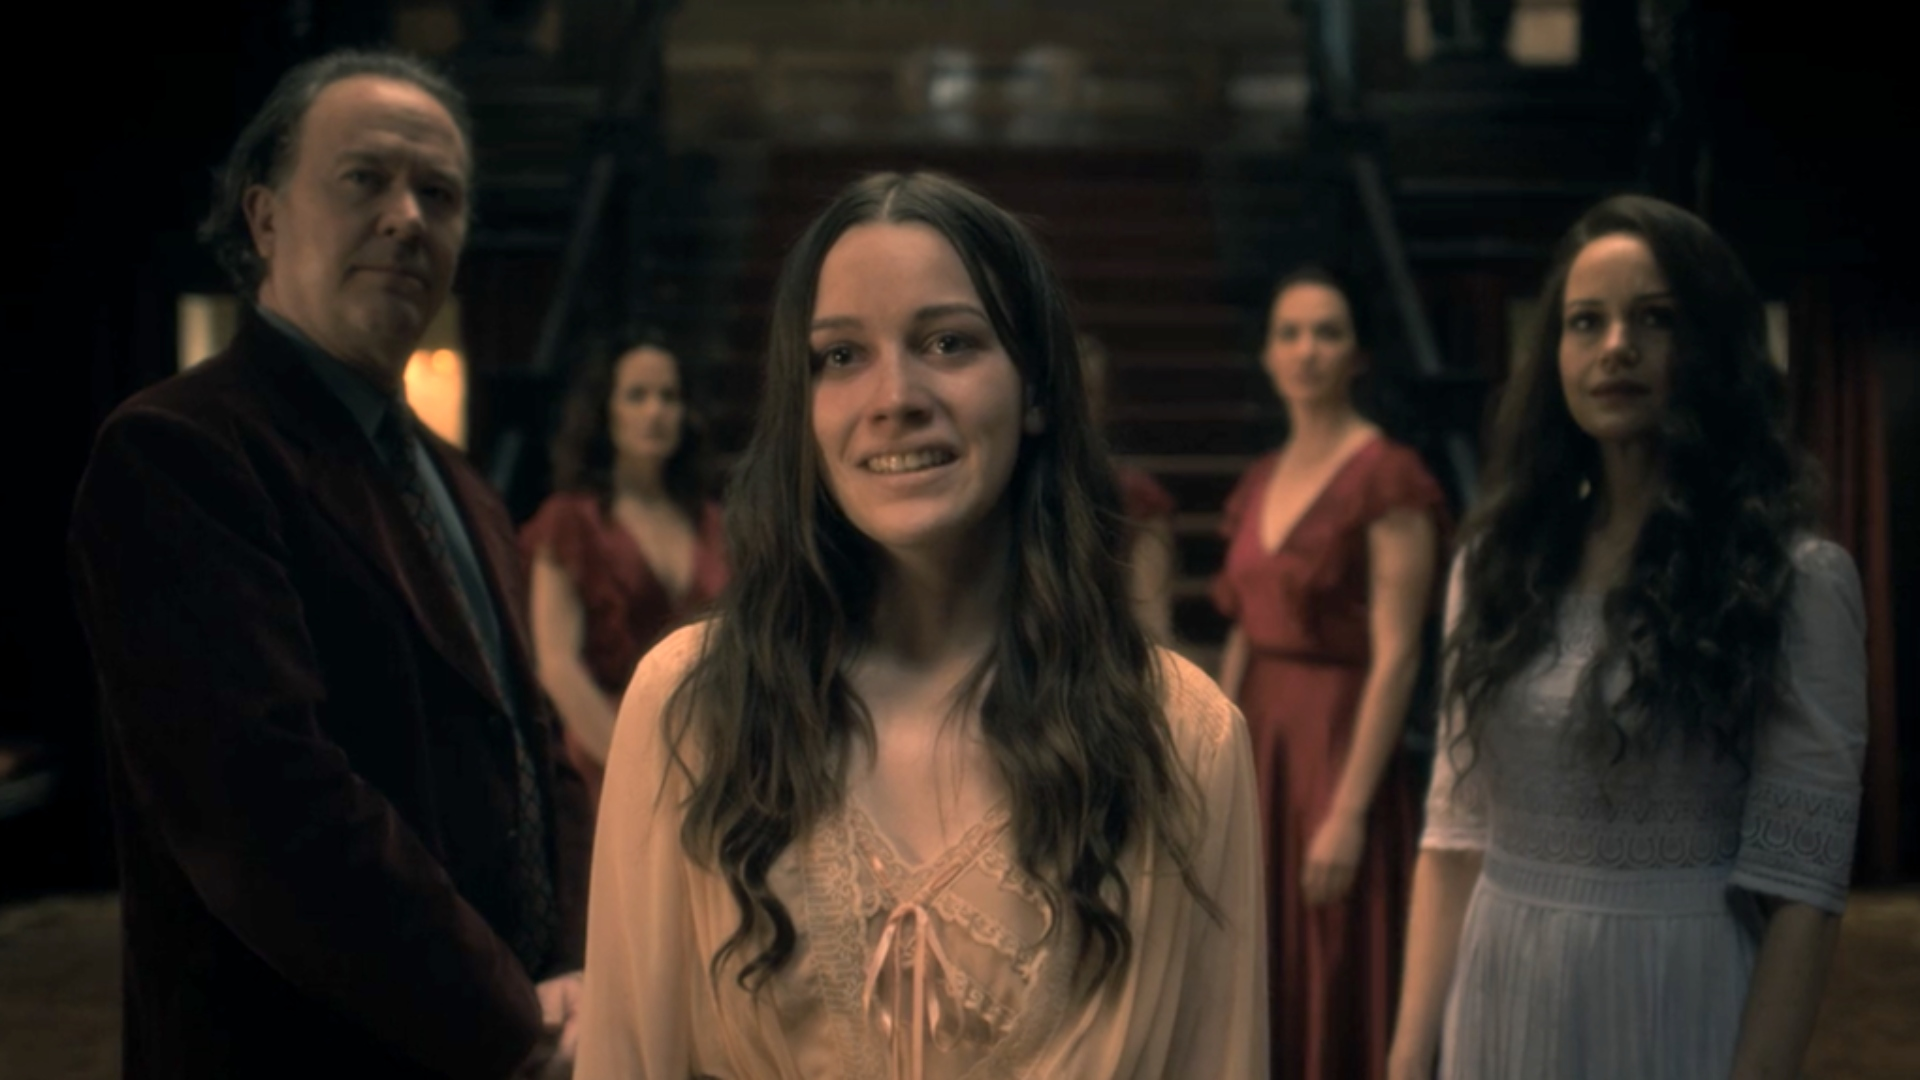 The Haunting Of Hill House was one of Netflix's most-popular shows of 2018